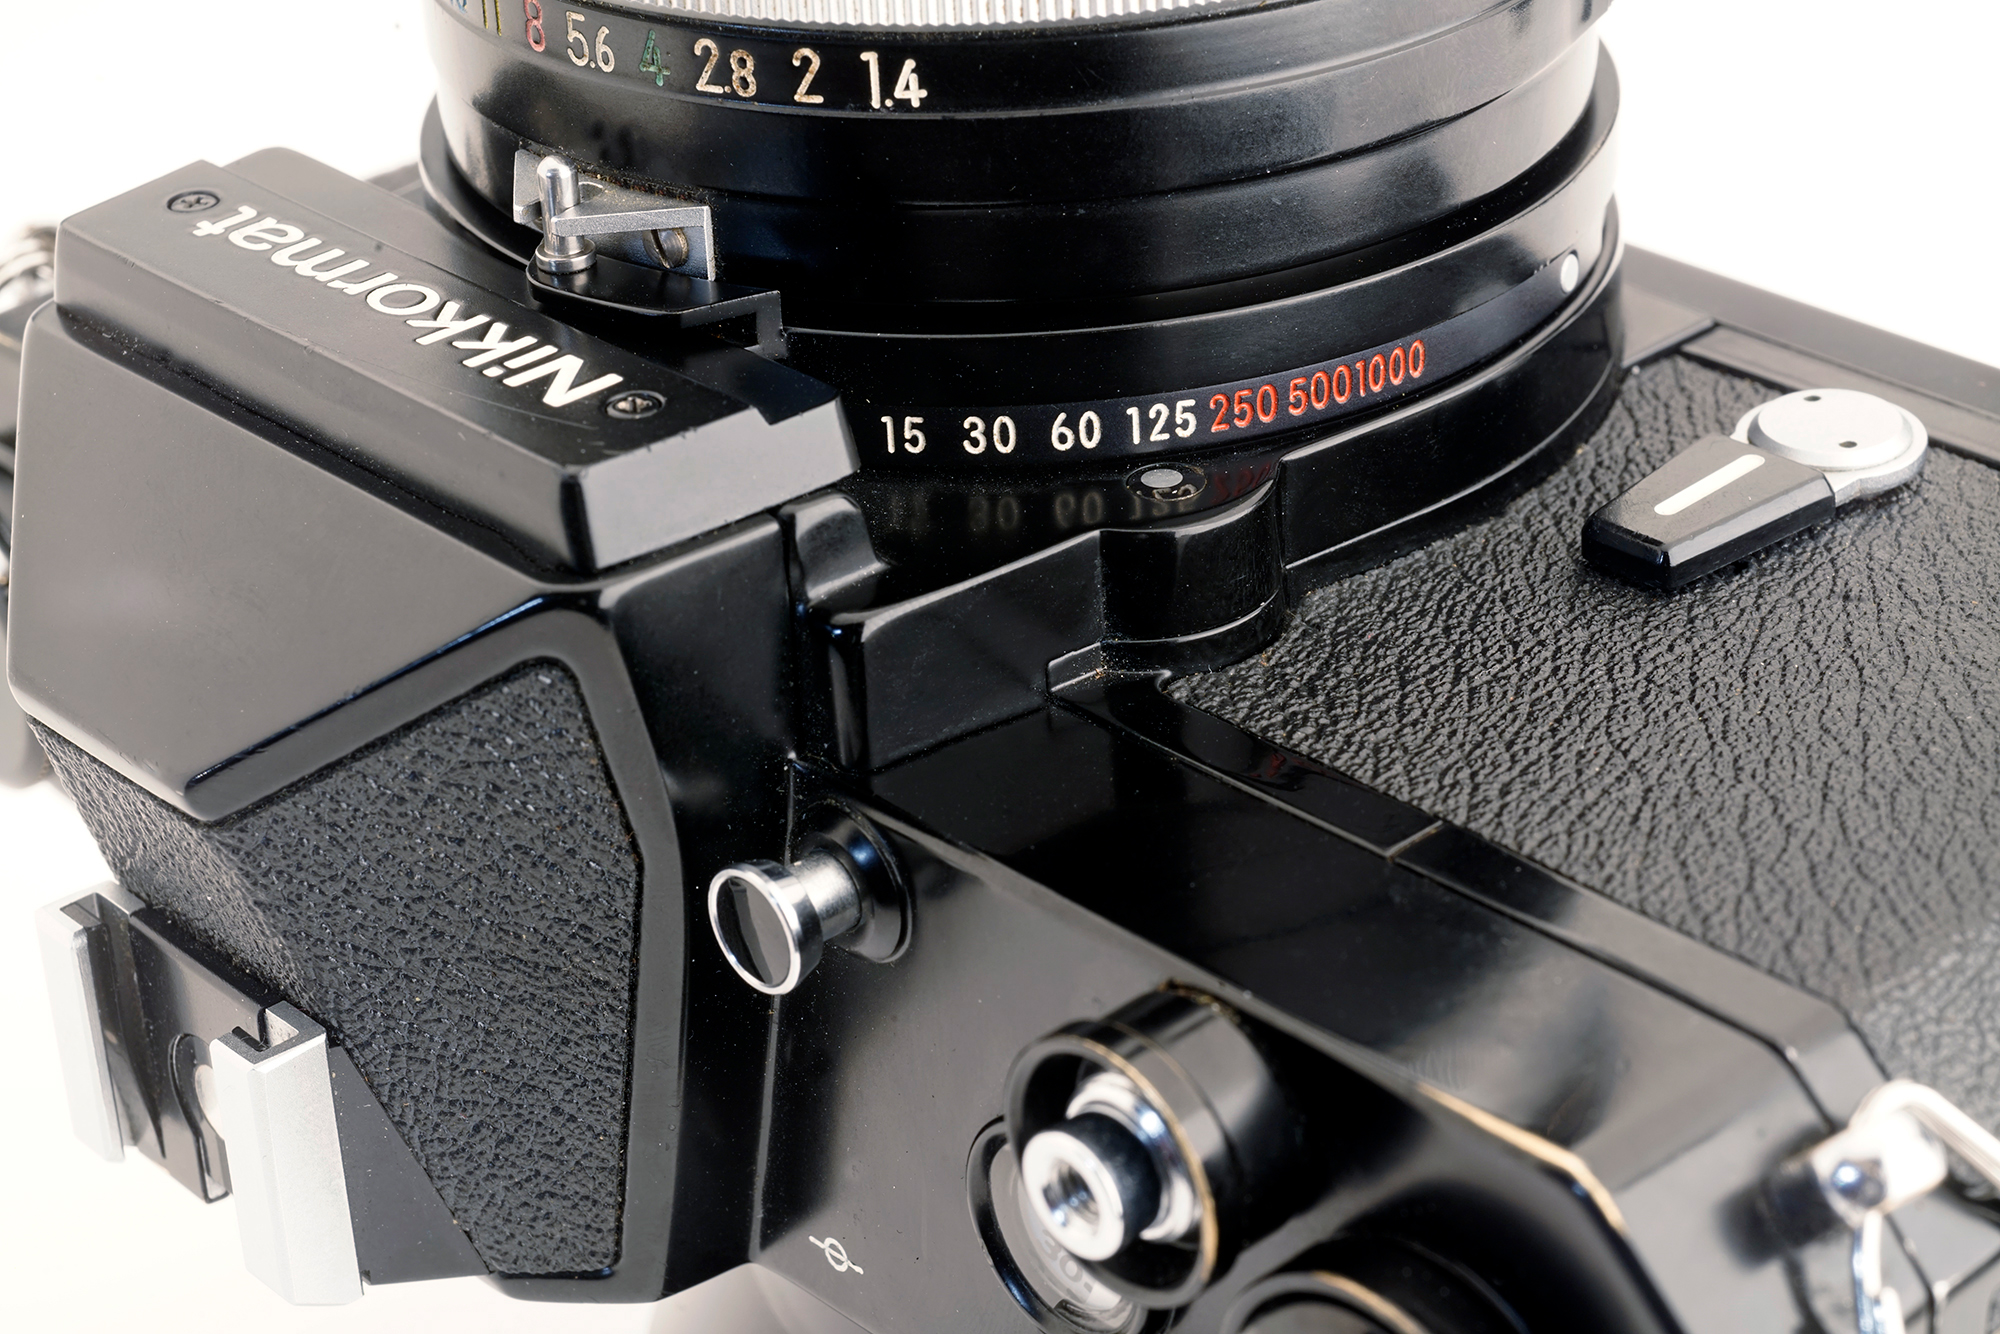 Classic camera review nikkormat ft 2 the poor mans nikon f nikon f series cameras had a top flash sync of only 190 of a second the vertical travel copal shutter in the nikkormat had a top sync speed of 1125 of a malvernweather Images